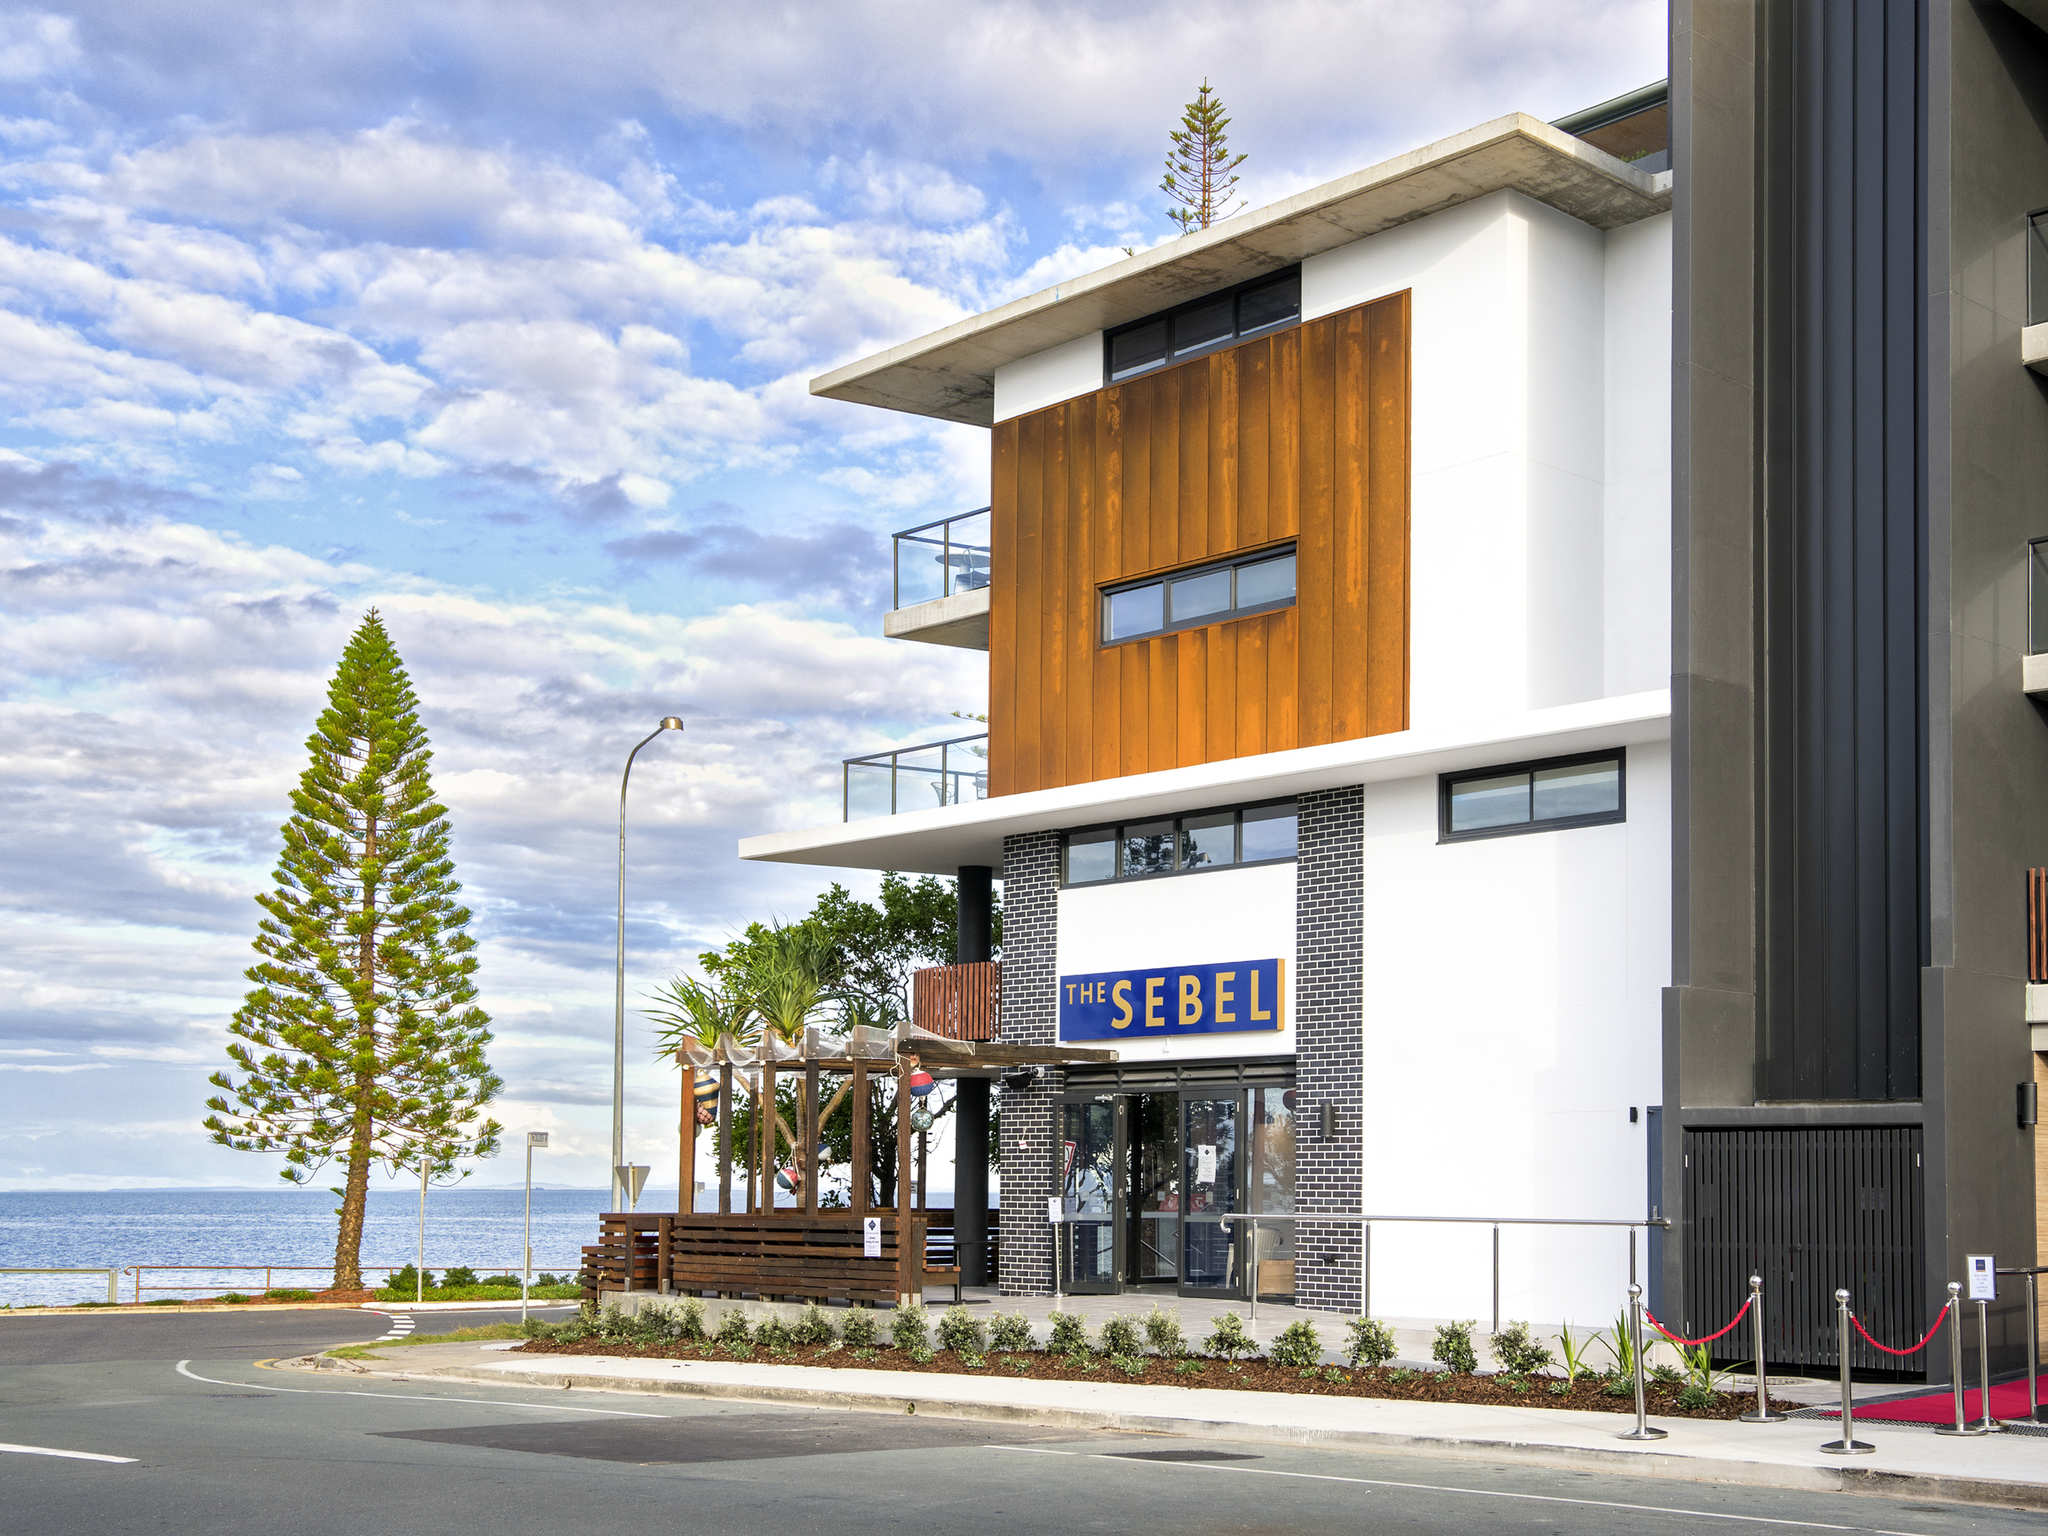 Hotel – The Sebel Brisbane Margate Beach